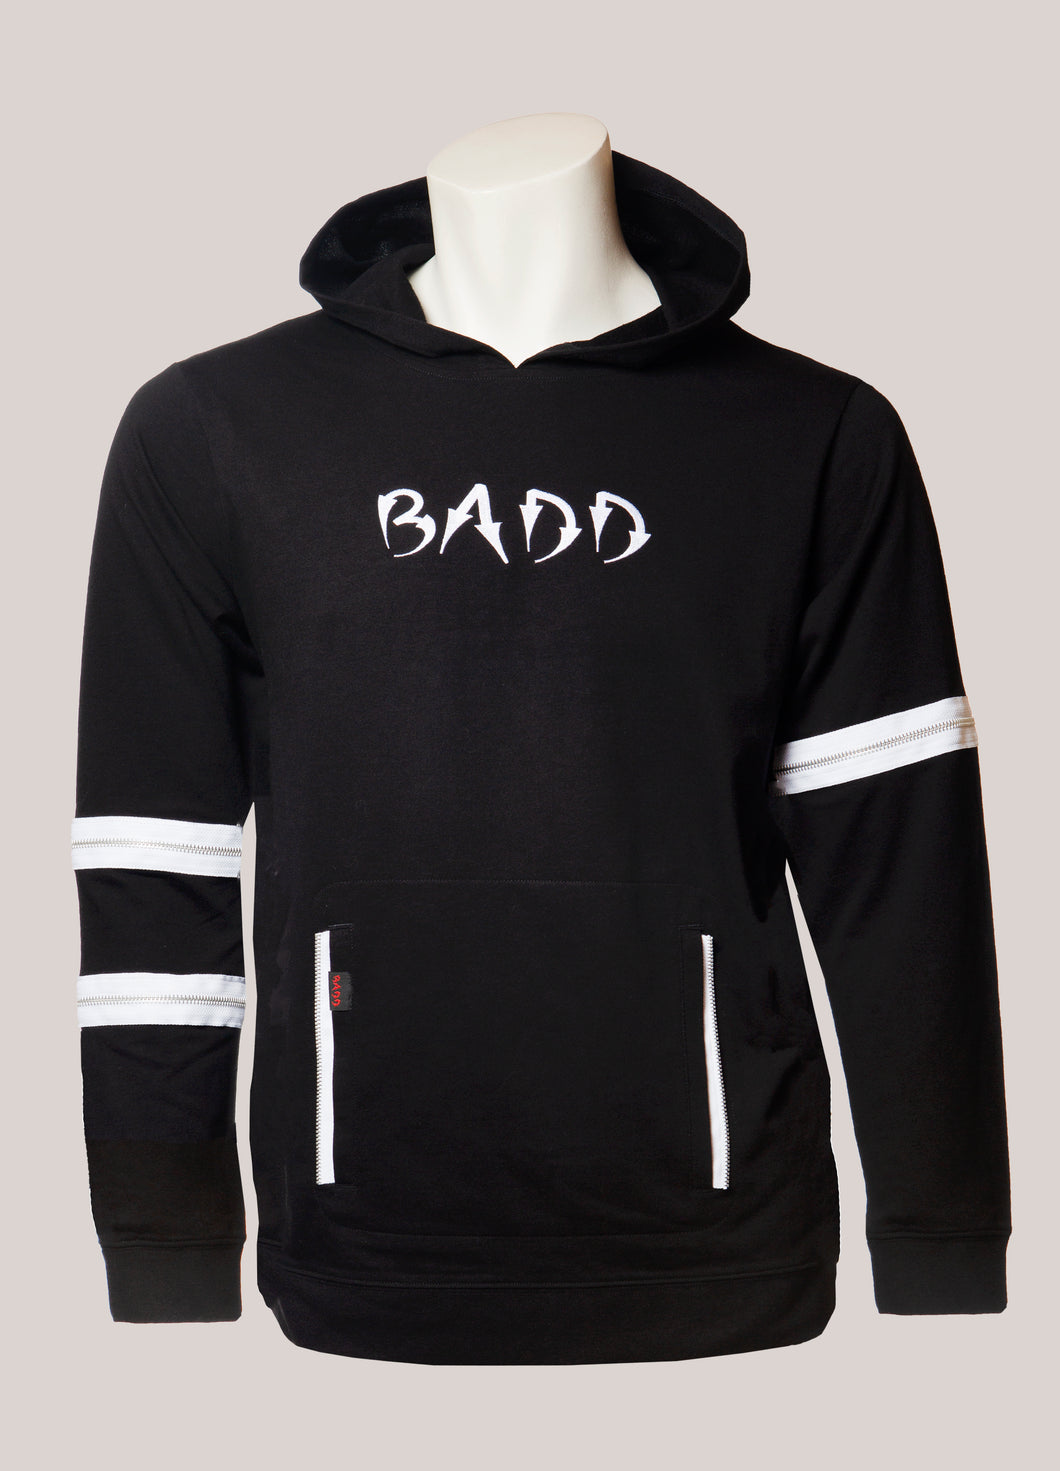 BADD Logo Men's Lightweight Zipper Hoodie Black